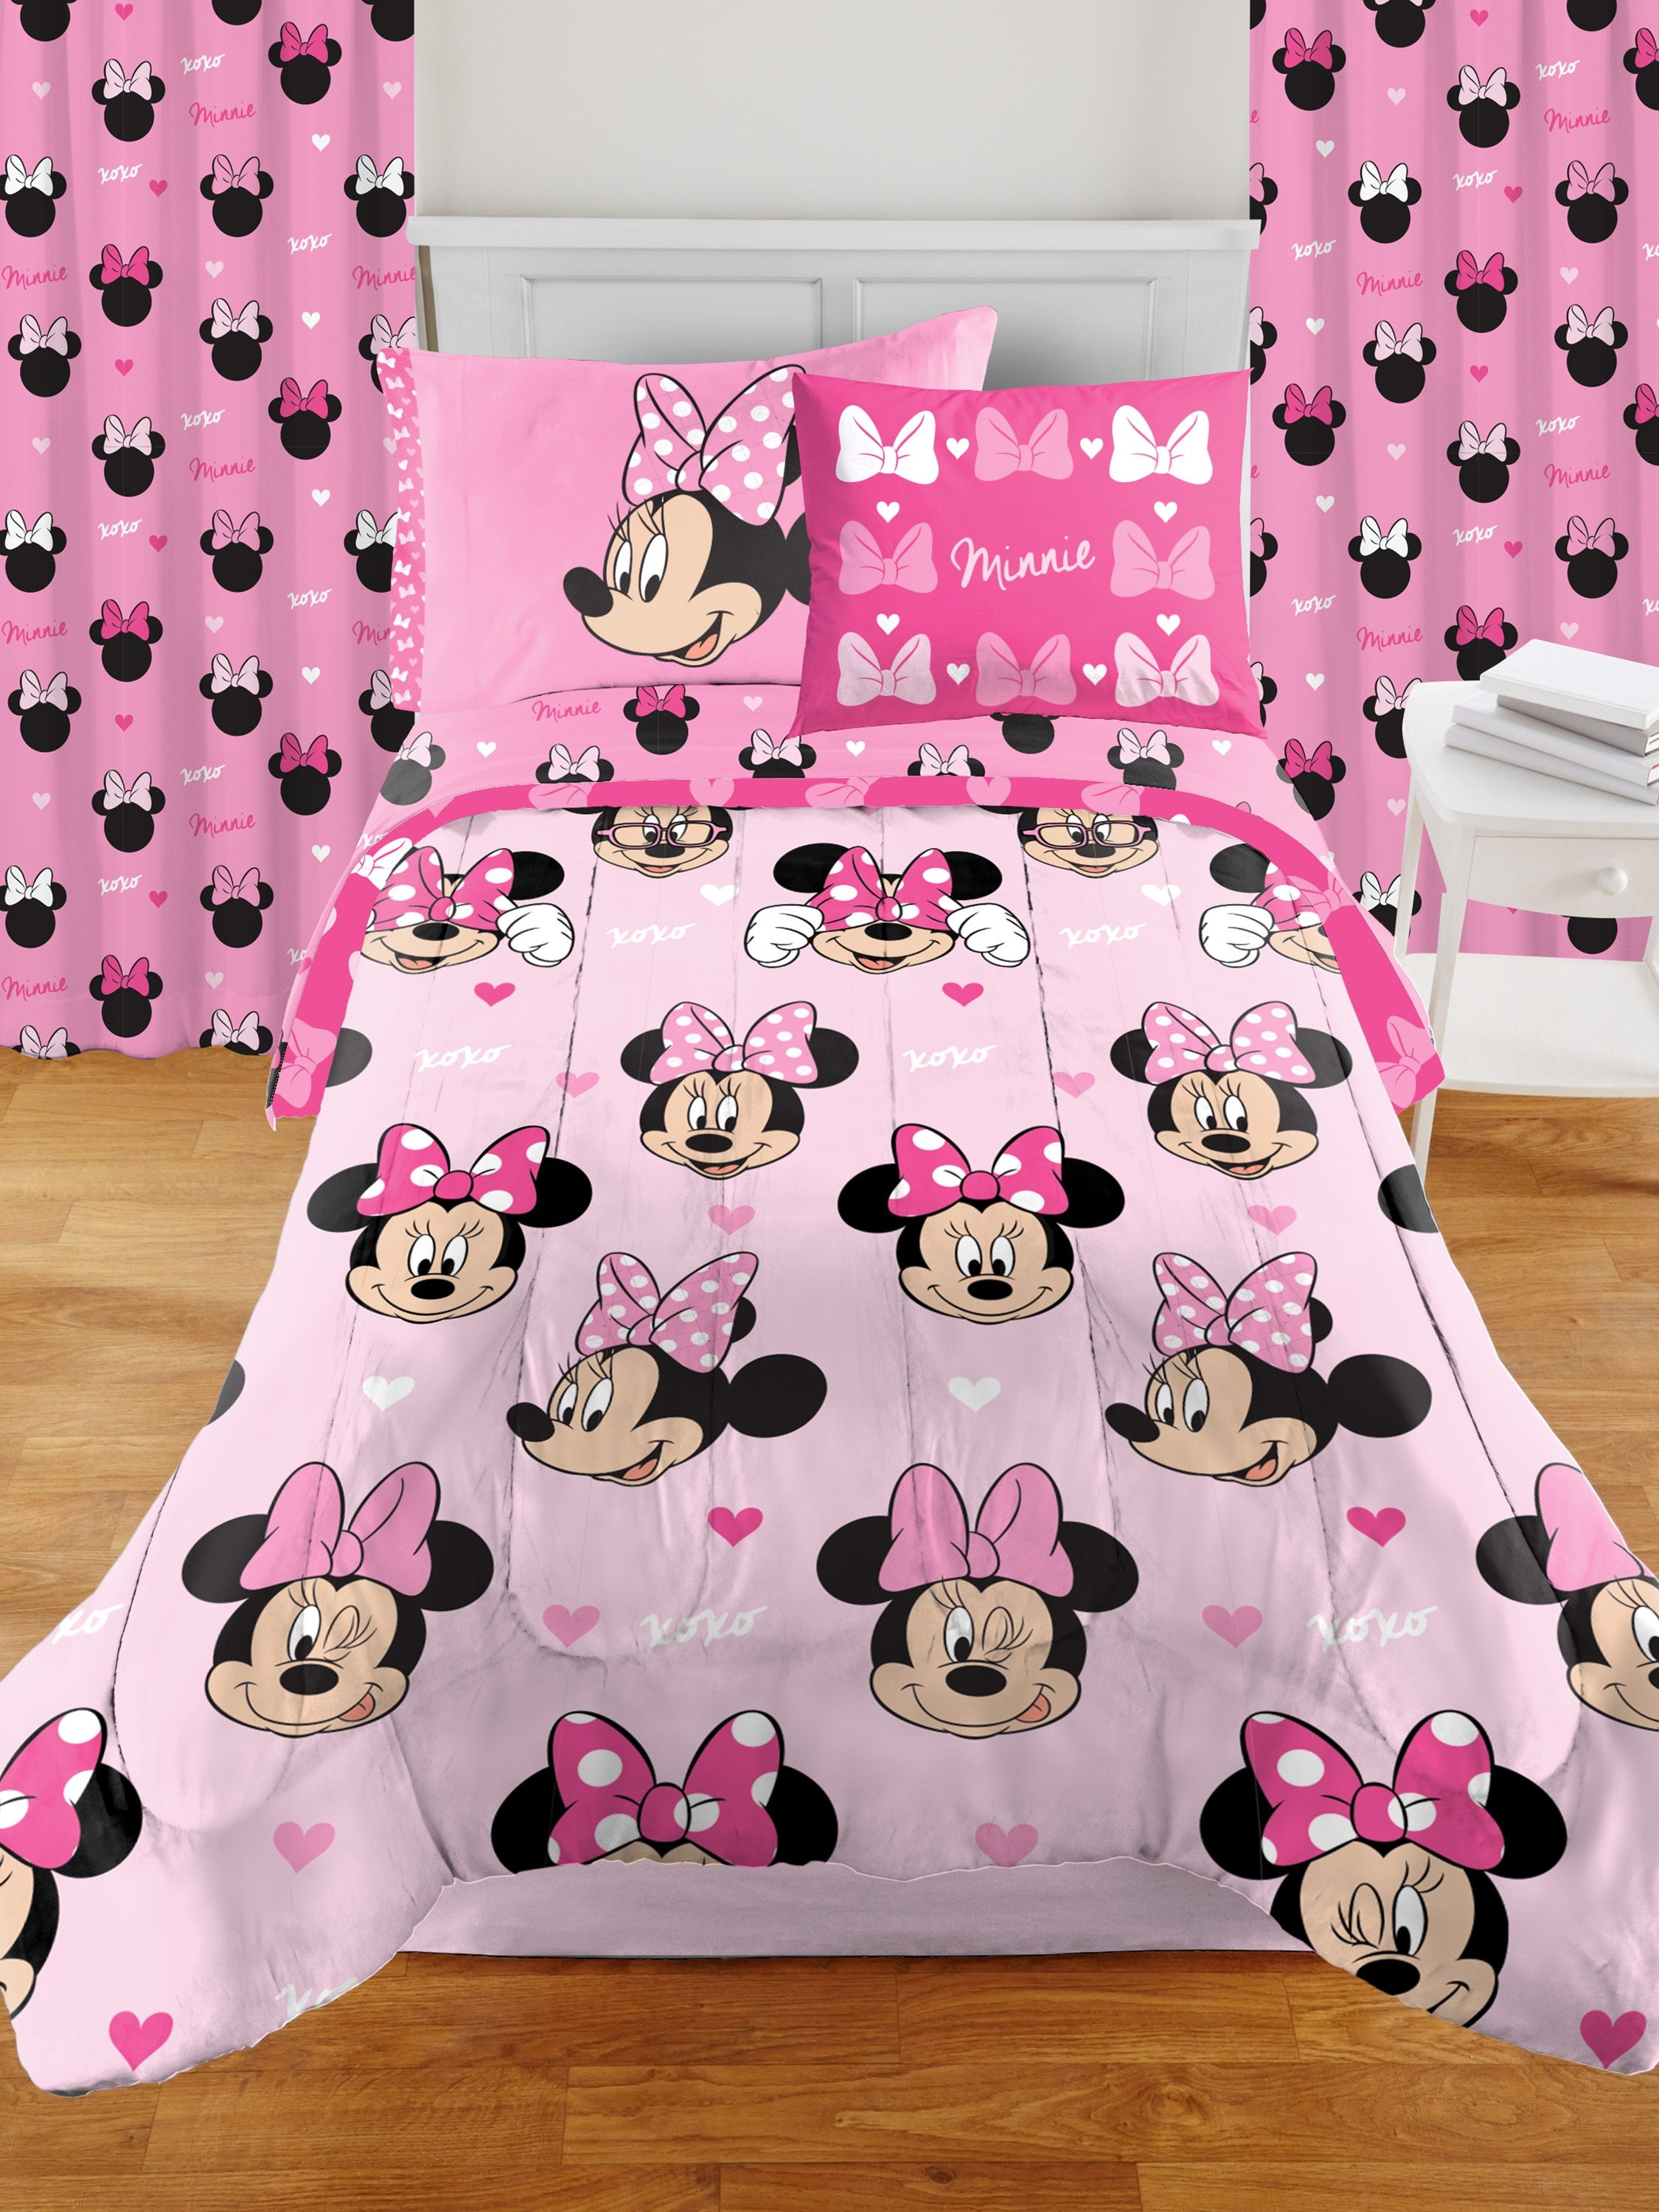 minnie mouse room in a box set includes bedding set and